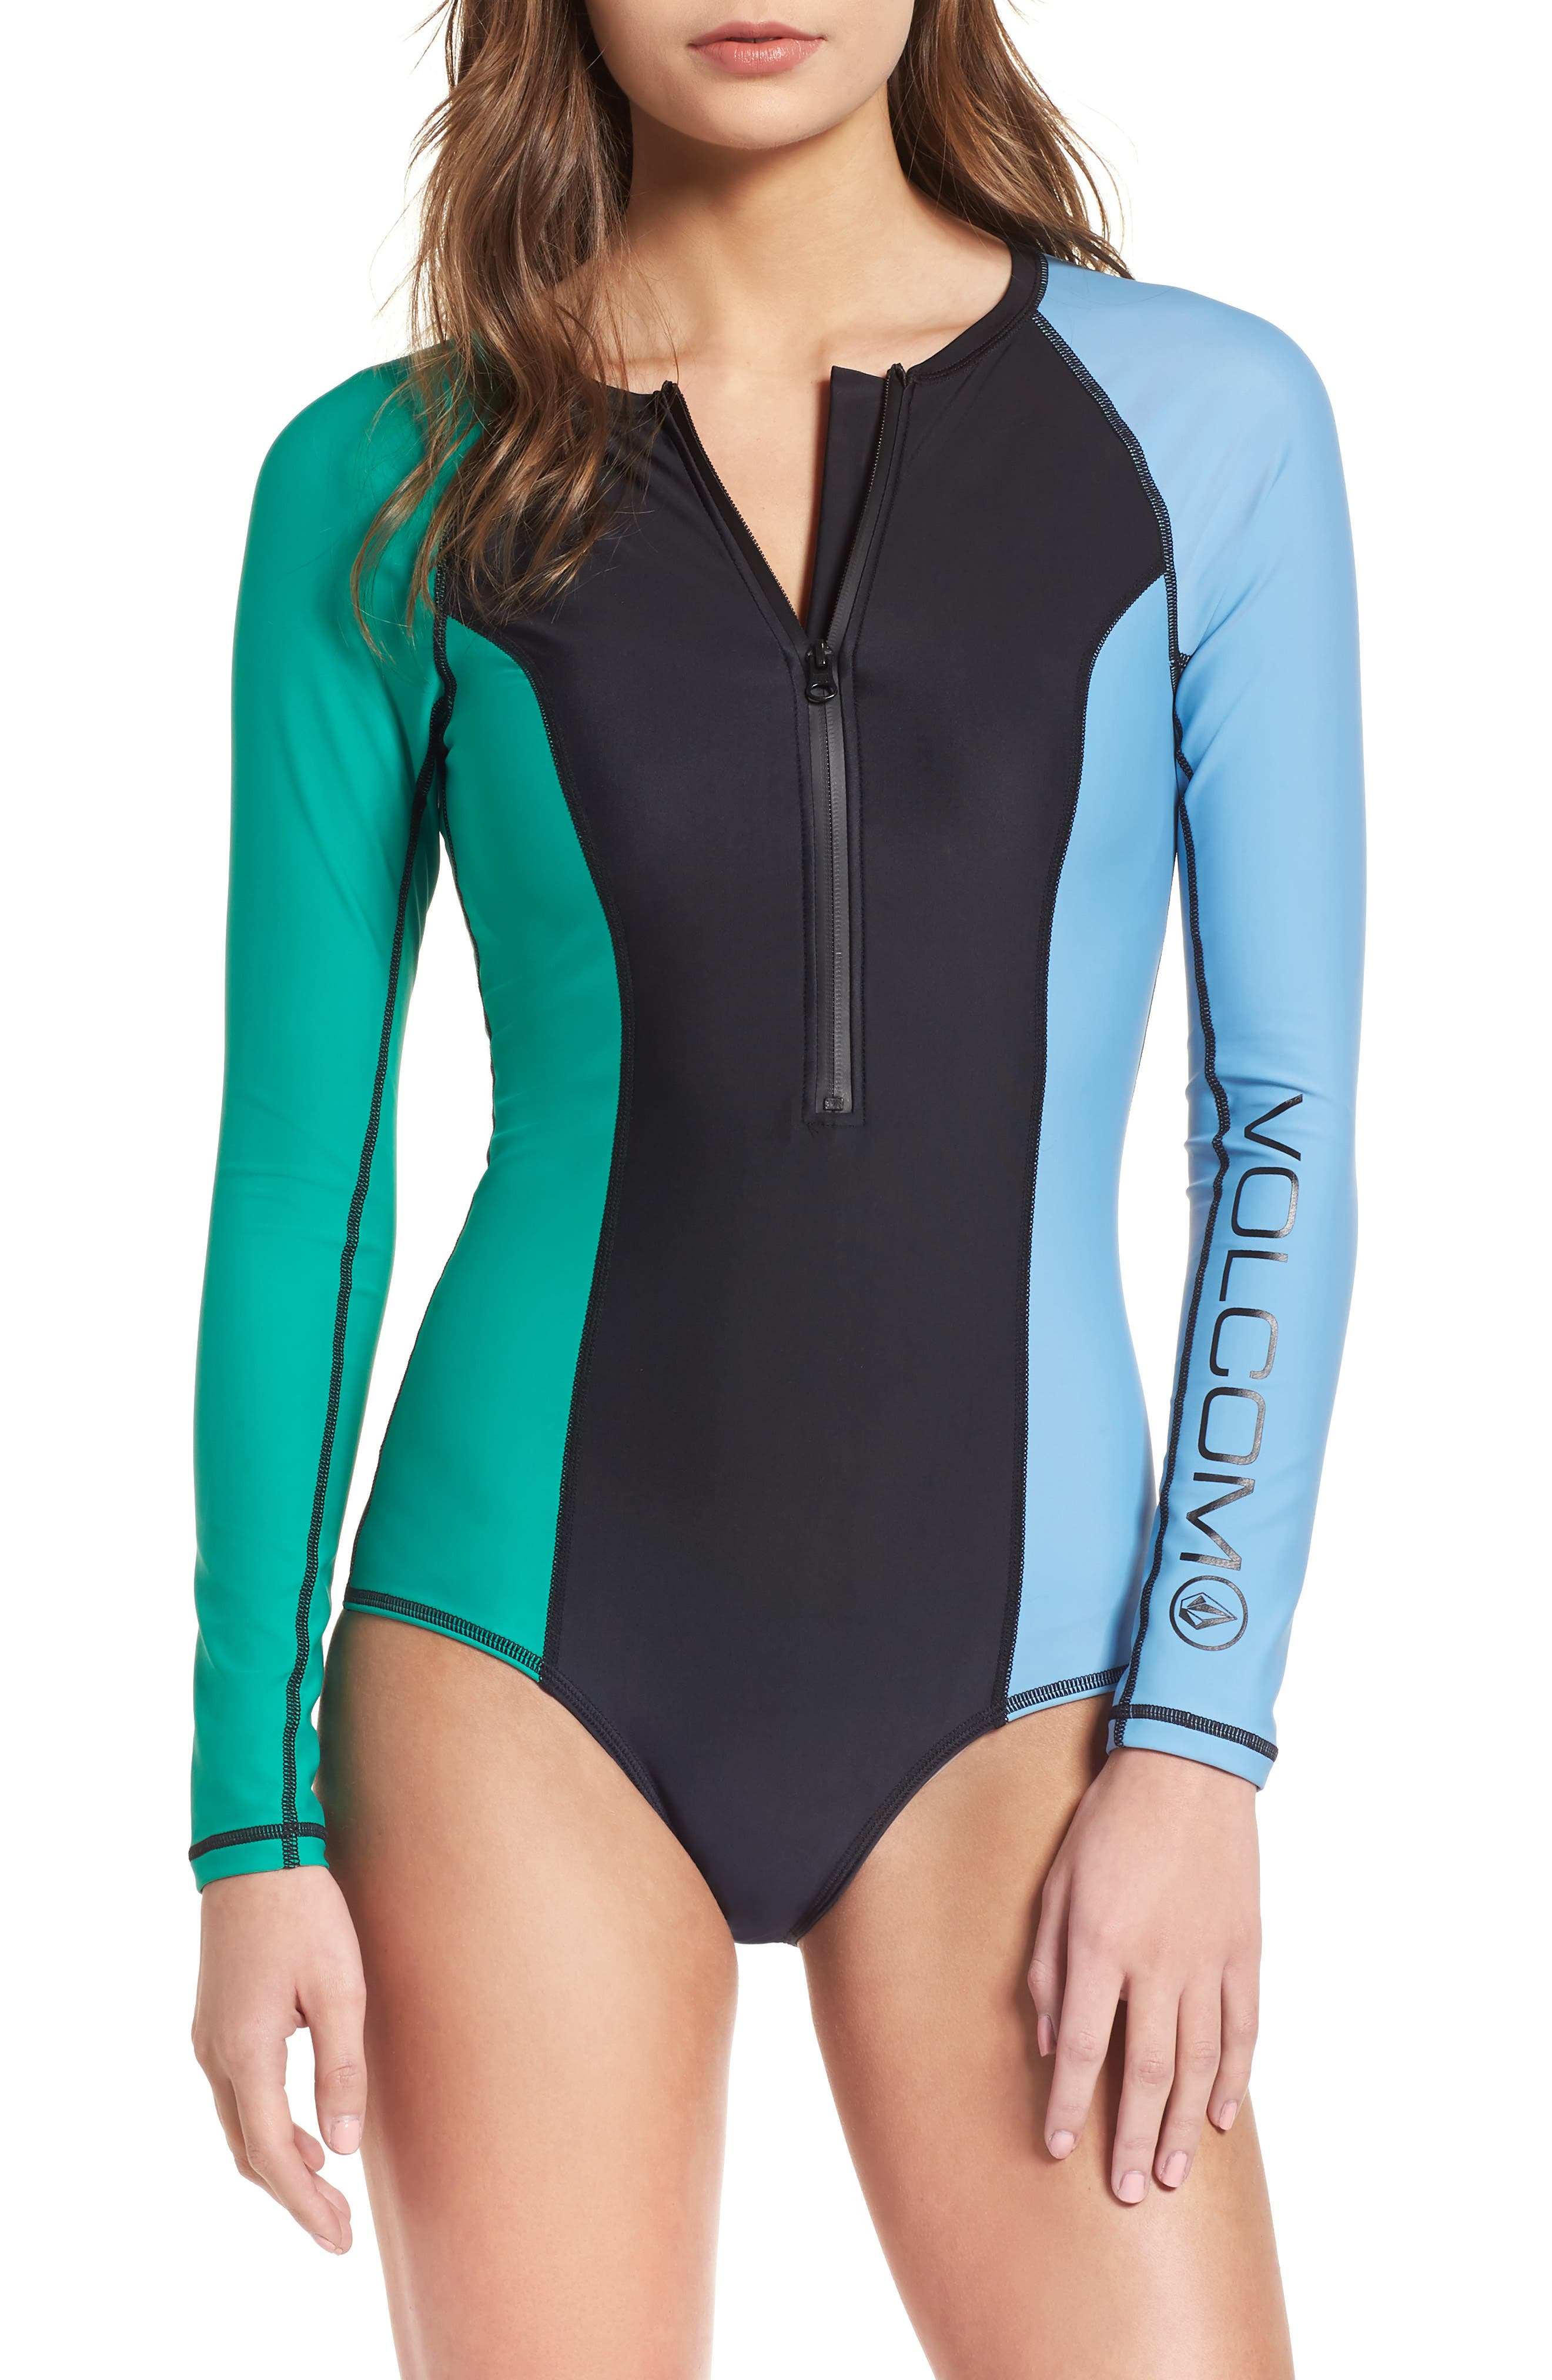 Simply Solid Long Sleeve One-Piece Swimsuit,                         Main,                         color, 307